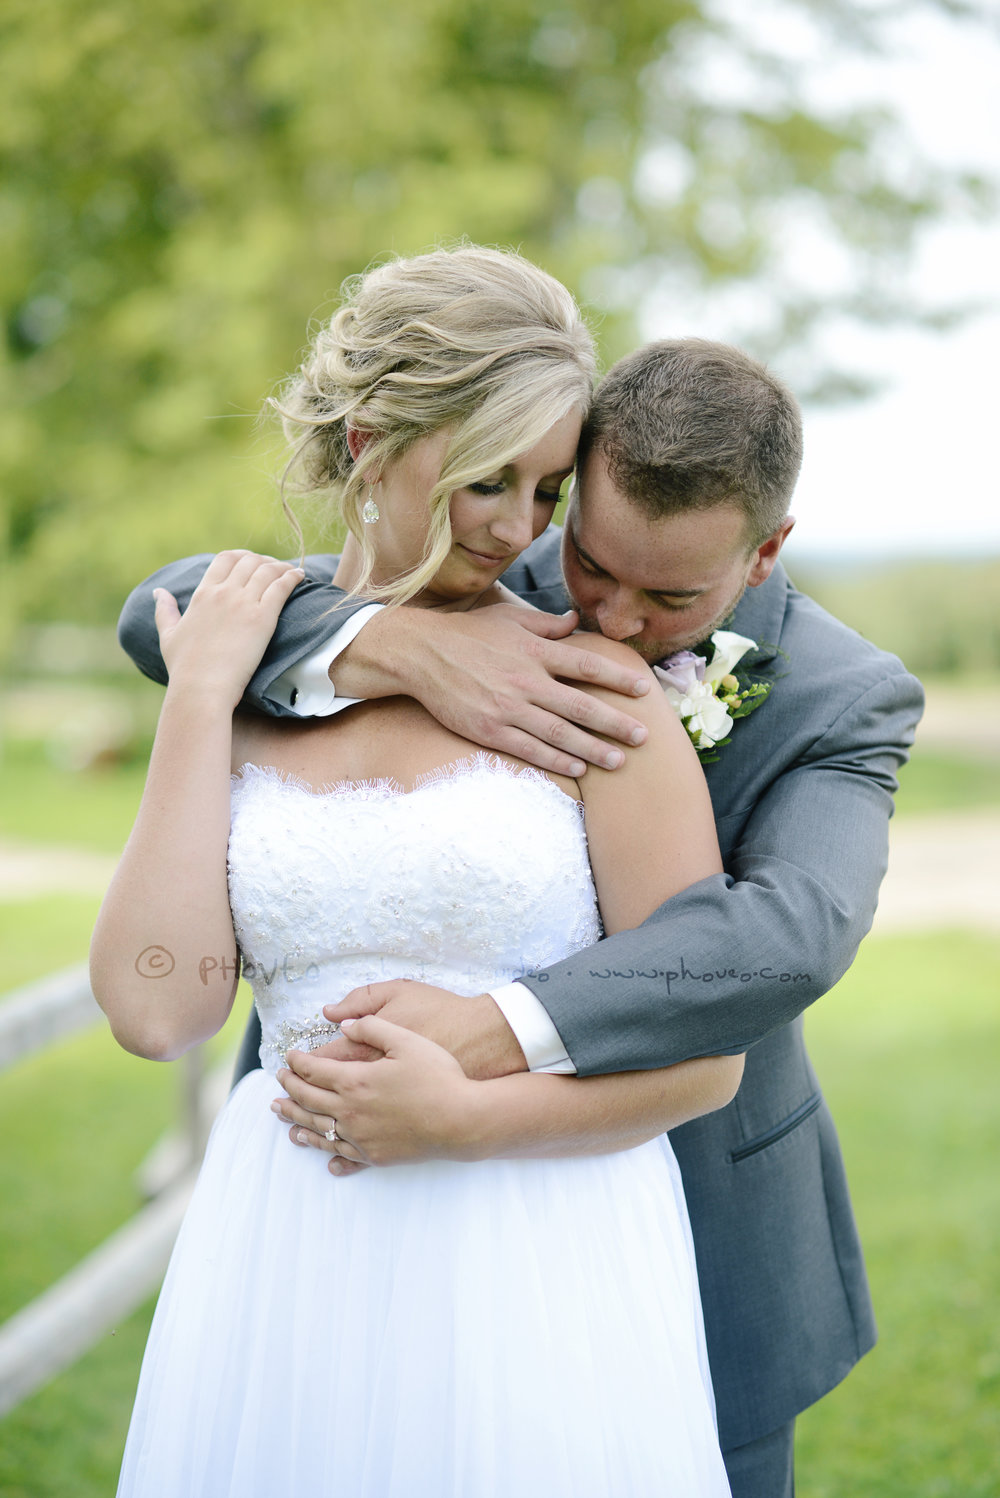 WM_20160826_Katelyn+Tony_13.jpg